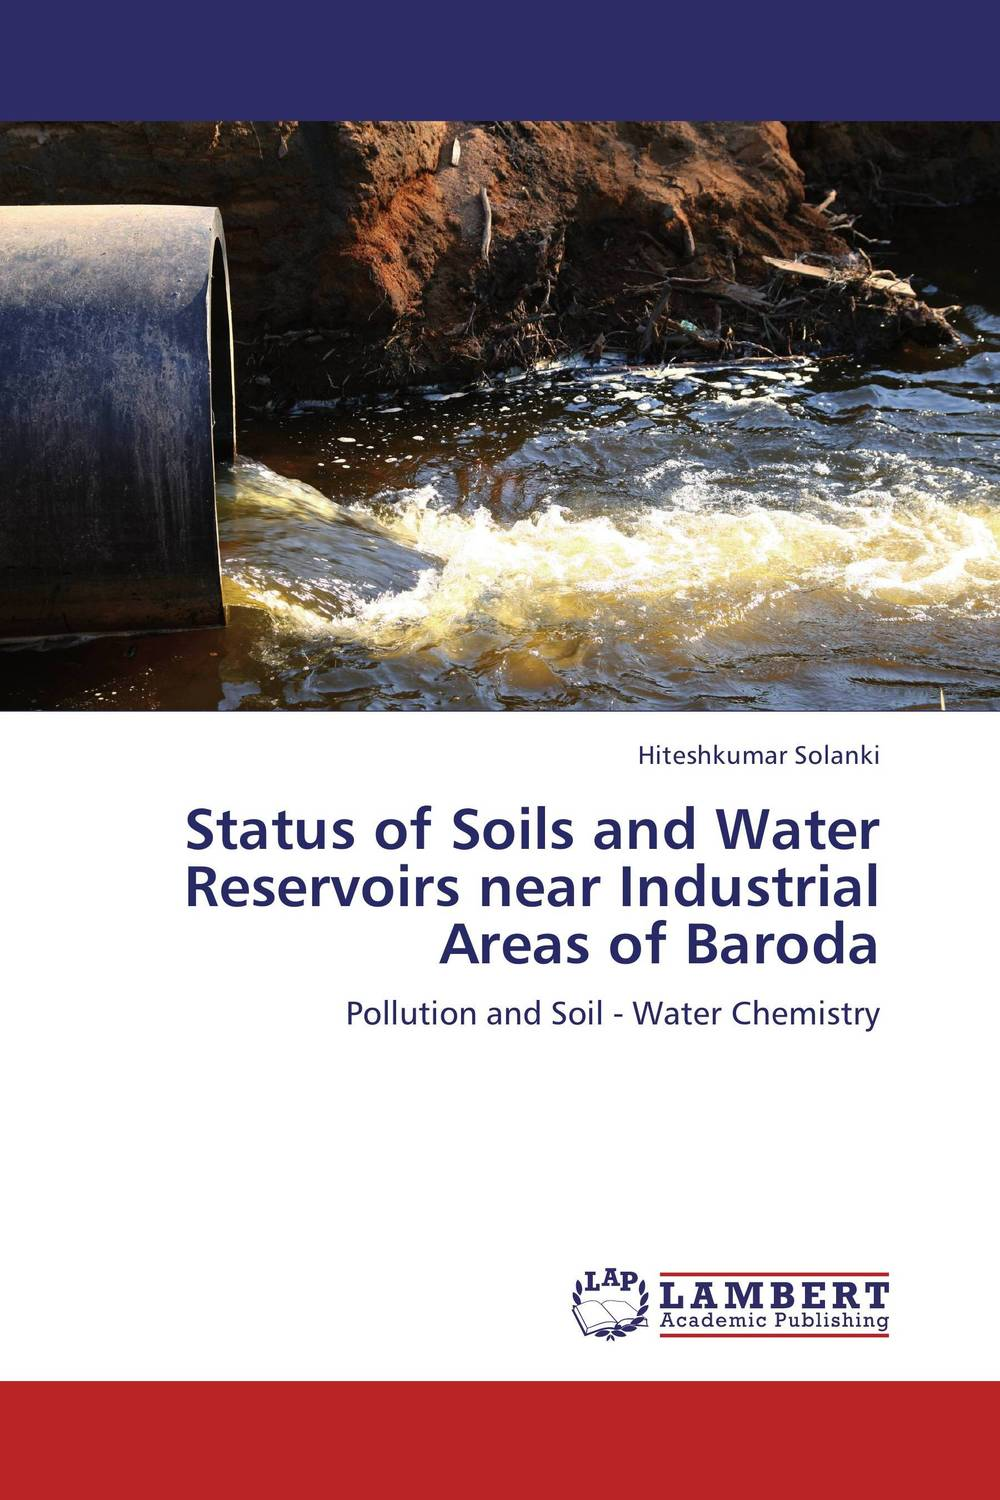 Status of Soils and Water Reservoirs near Industrial Areas of Baroda bride of the water god v 3